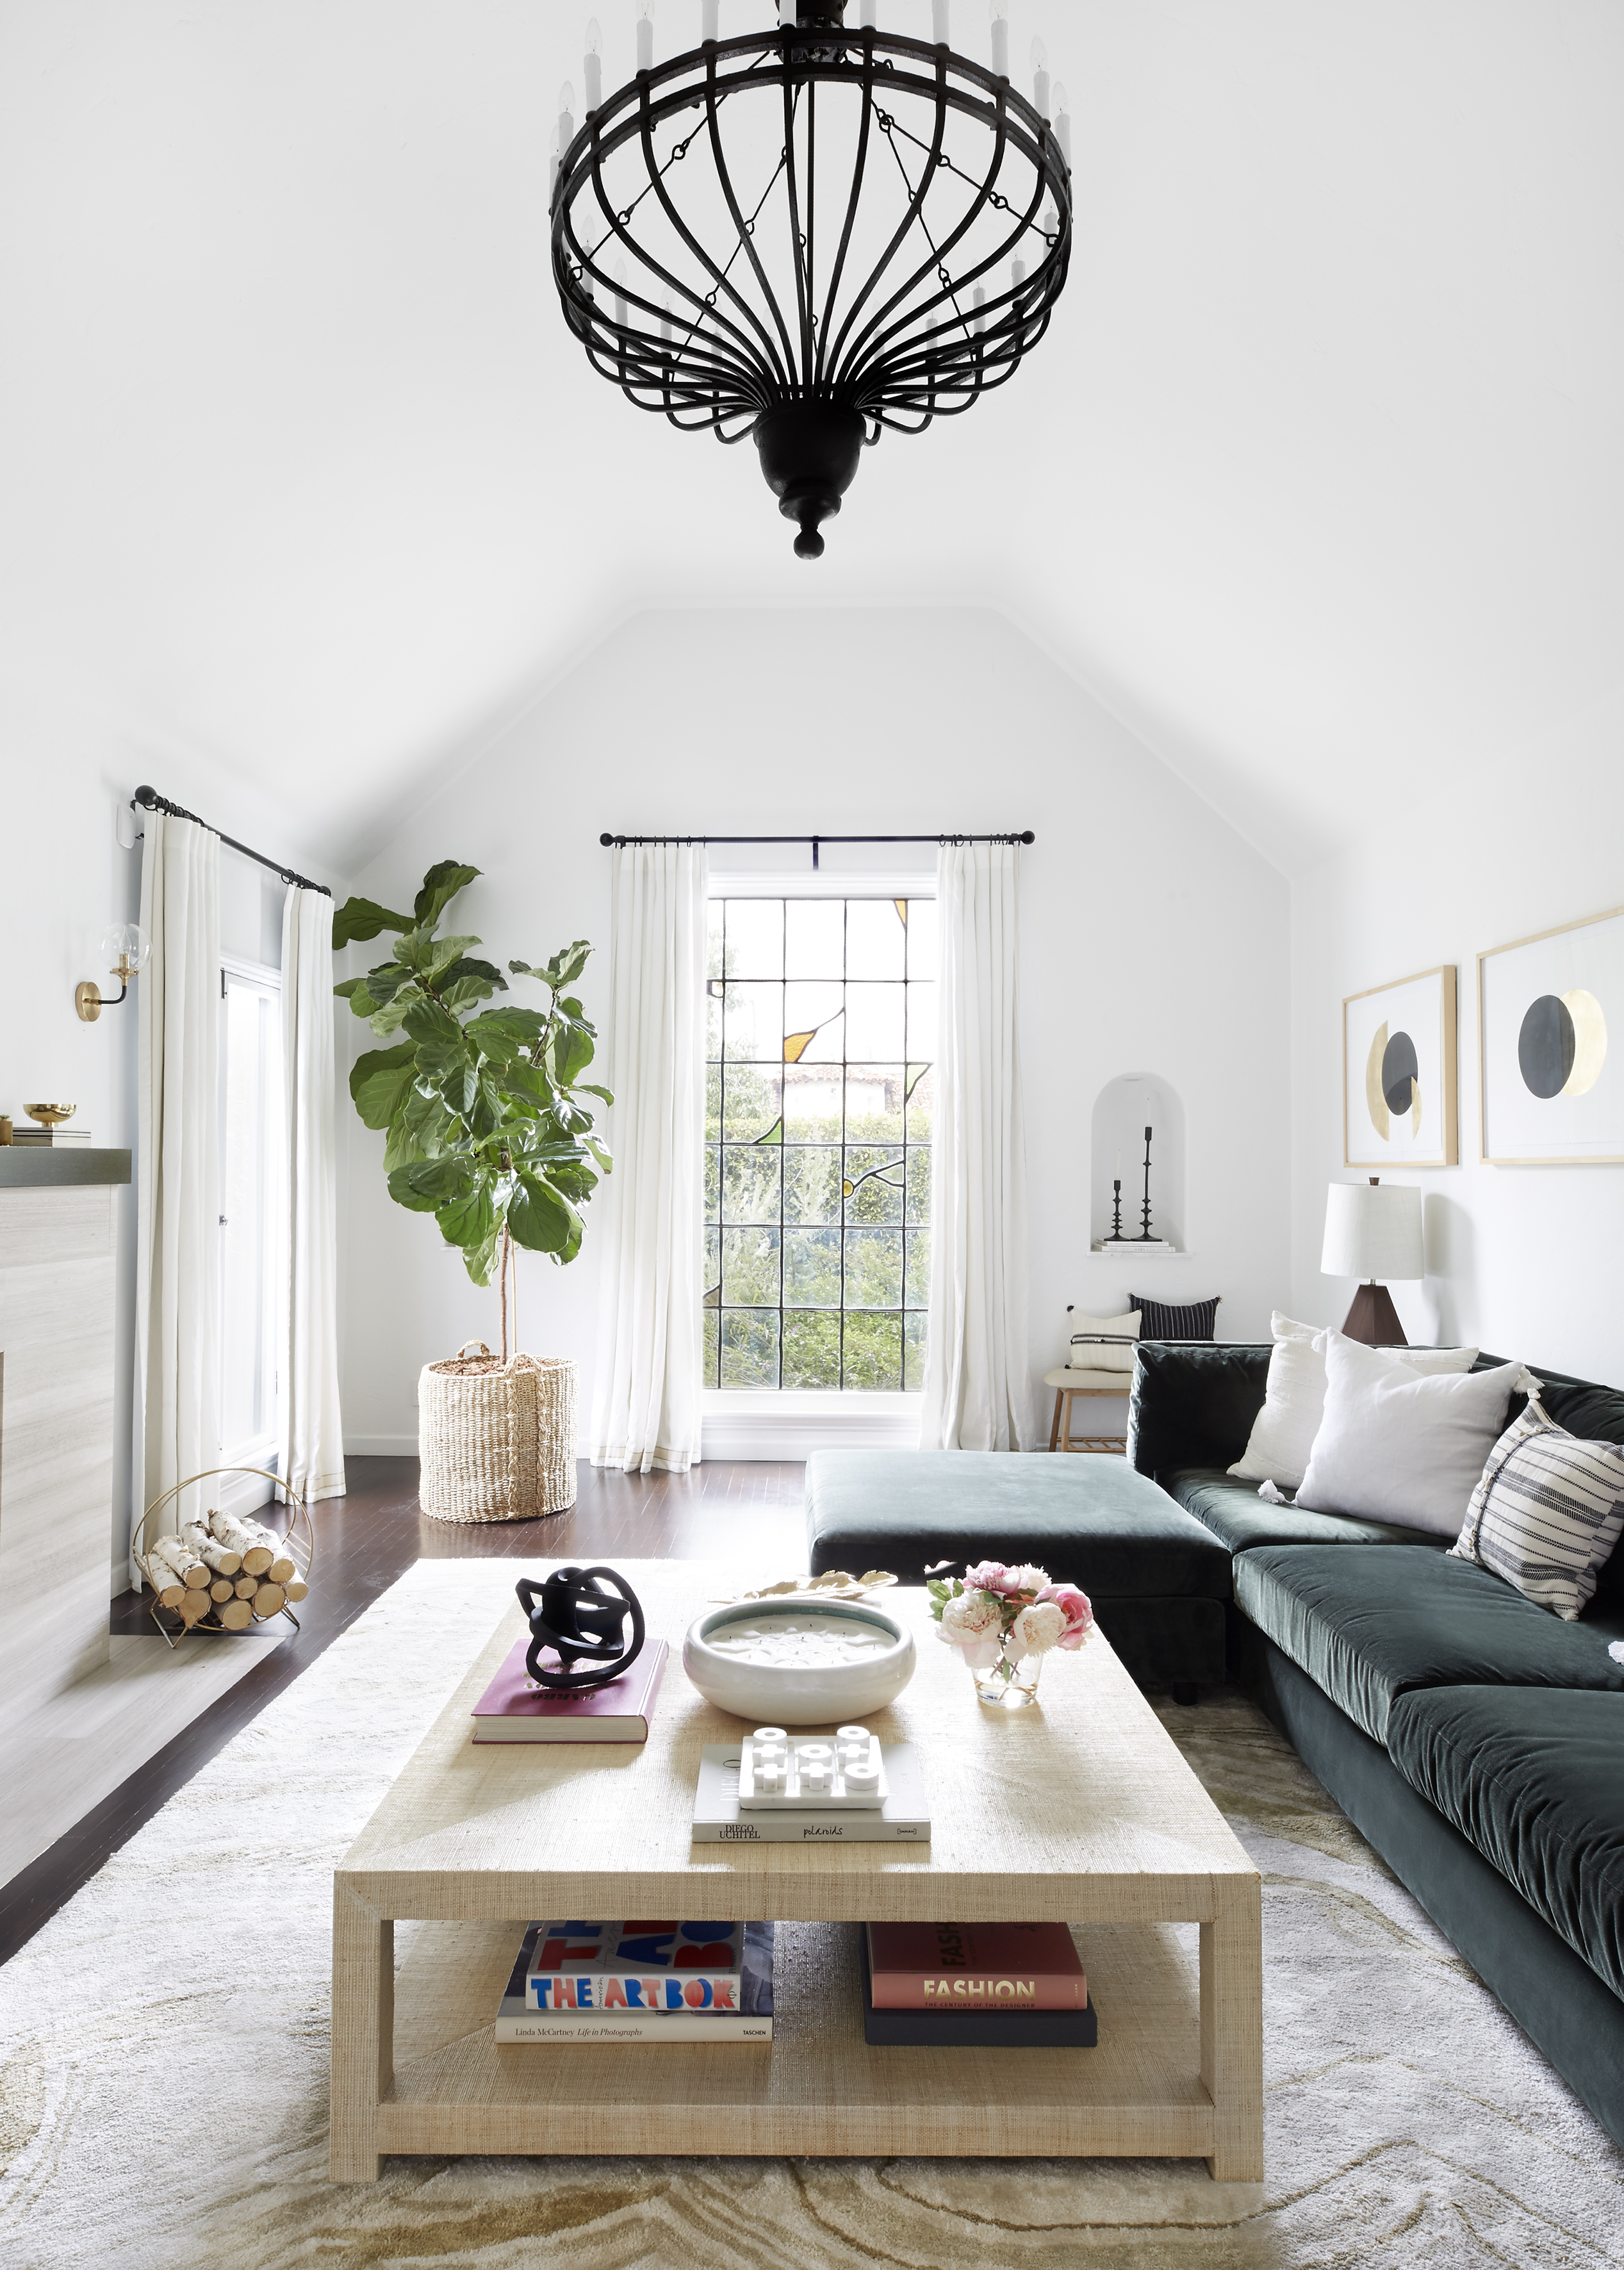 Large window coverings are mounted above the frame to add height and interest in the living room